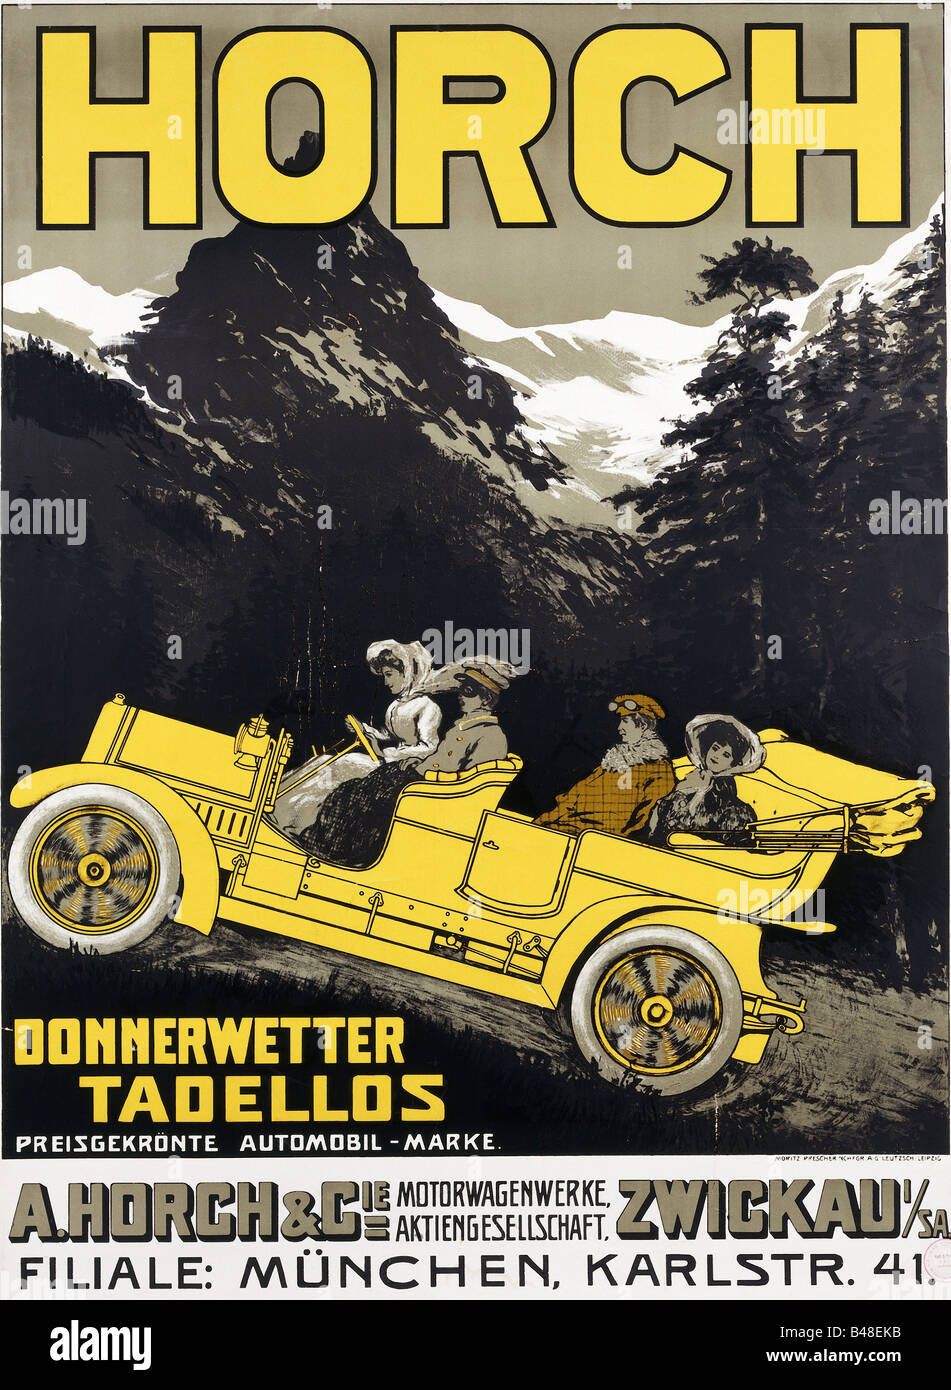 Colored cars zwickau - Stock Photo Advertising Cars August Horch Cie Zwickau Germany Poster For Munich Branch Donnerwetter Tadellos Circa 1910 Hist